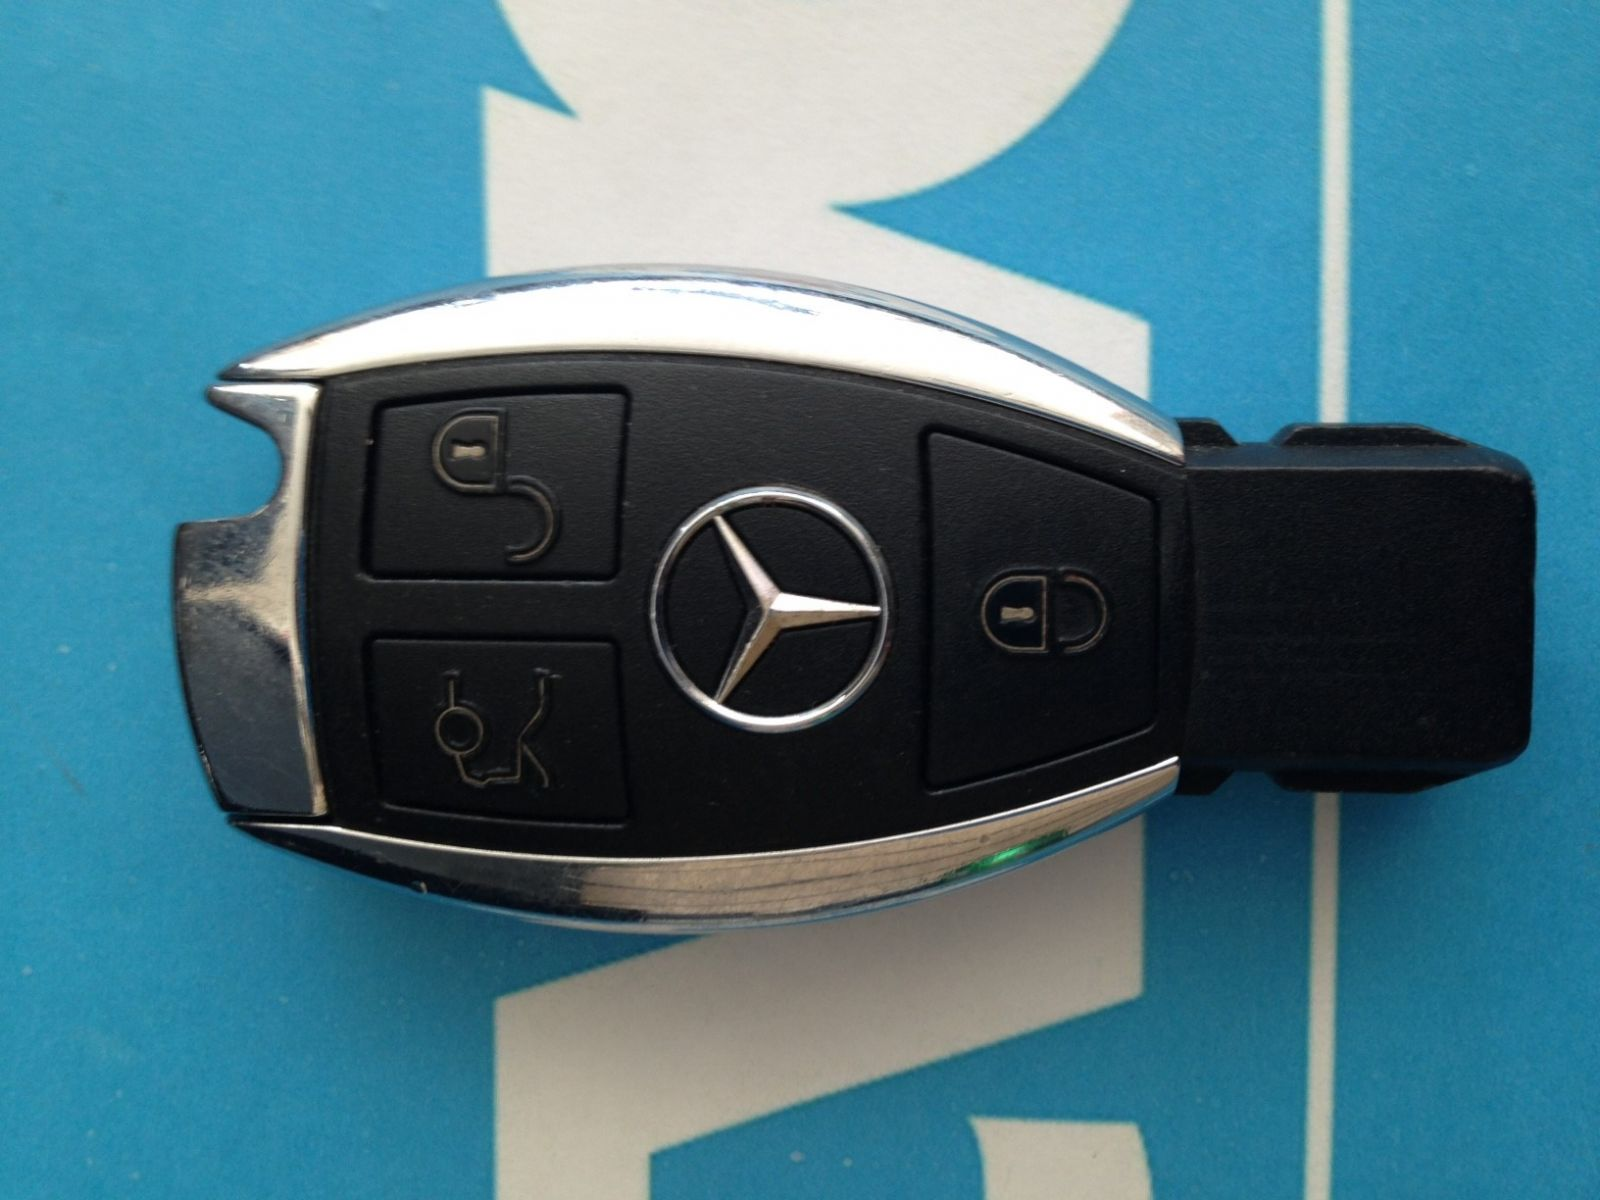 Key for Merces Benz